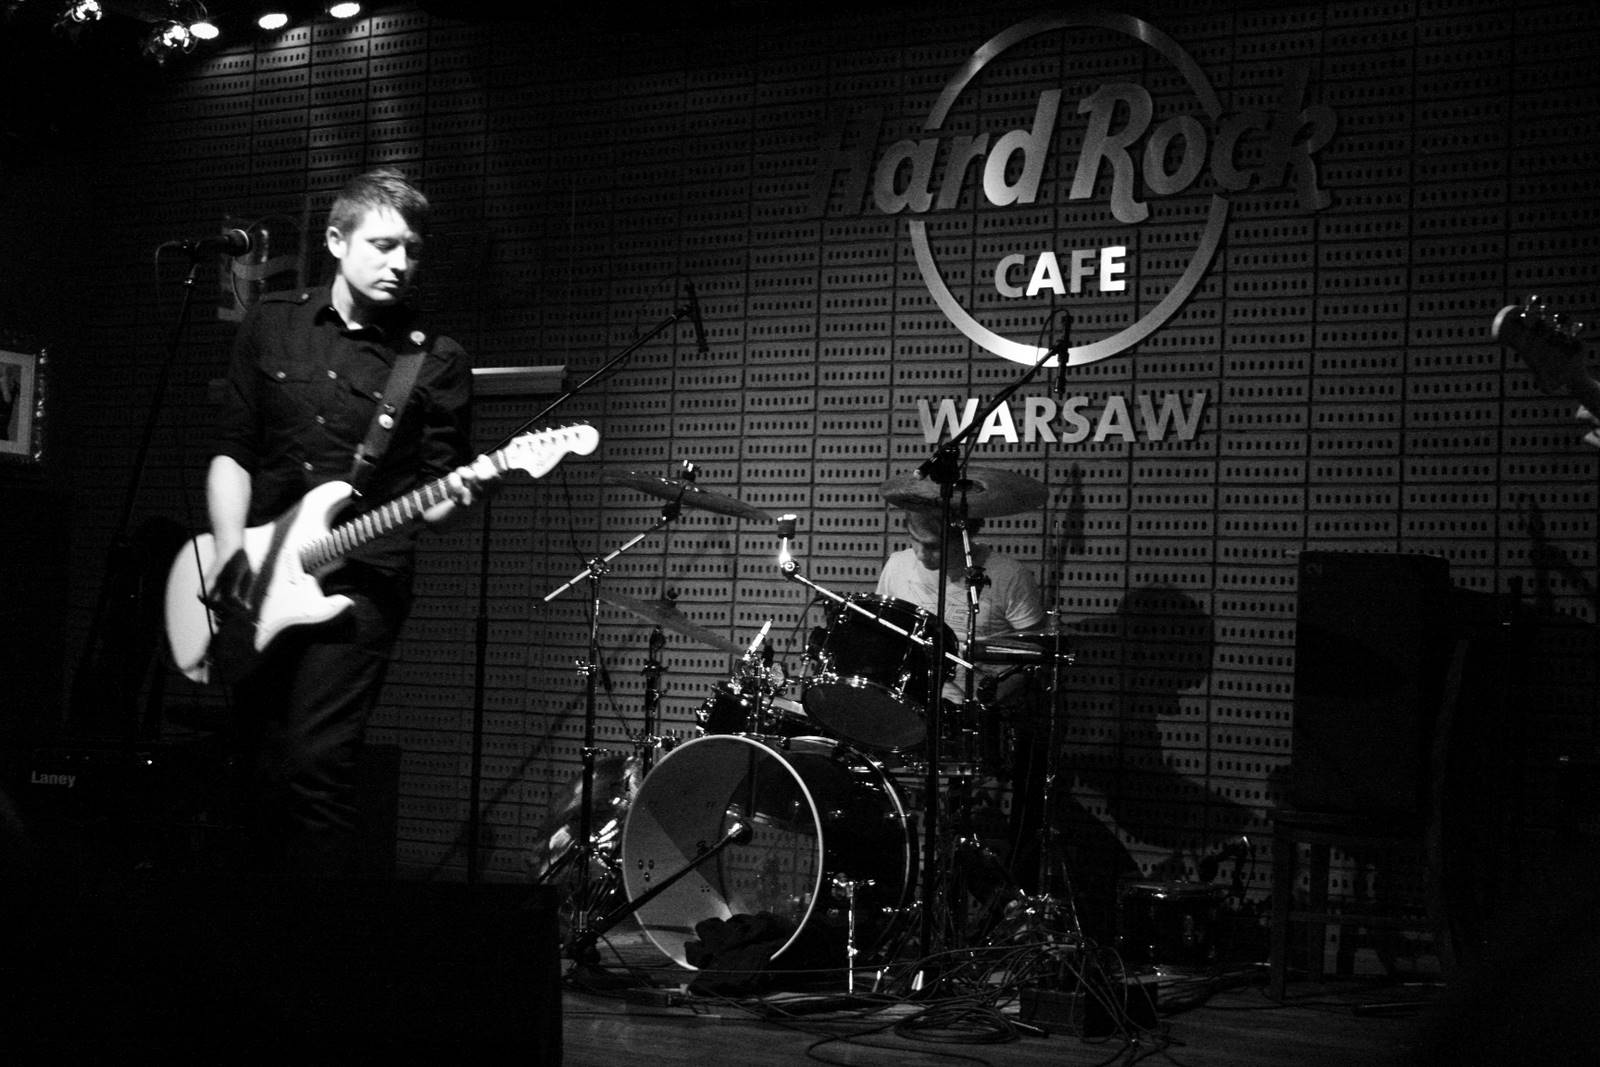 Live at Hard Rock Cafe Warsaw 2008 (photo: Grzegorz Marcinek)